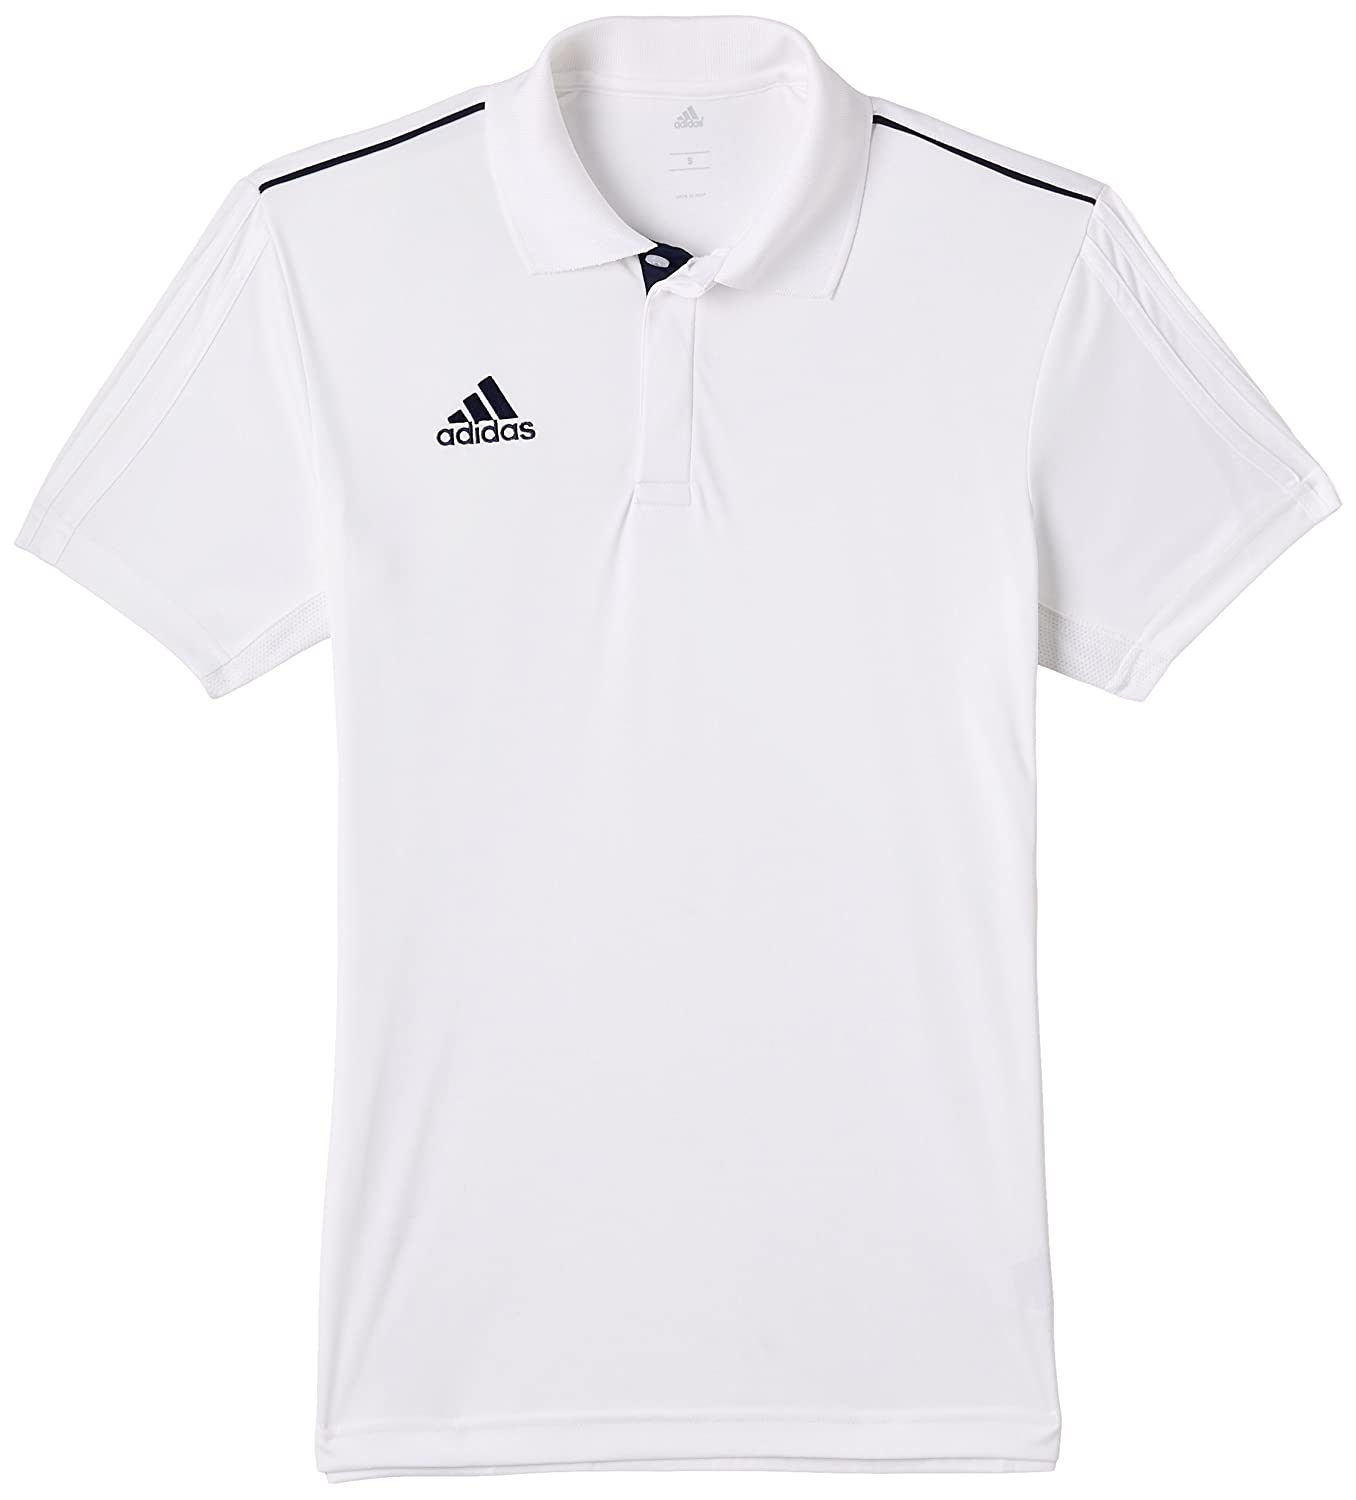 Cricket t shirt white - Buy Adidas Basic Polyester Cricket Polo Men S Xx Large White Online At Low Prices In India Amazon In